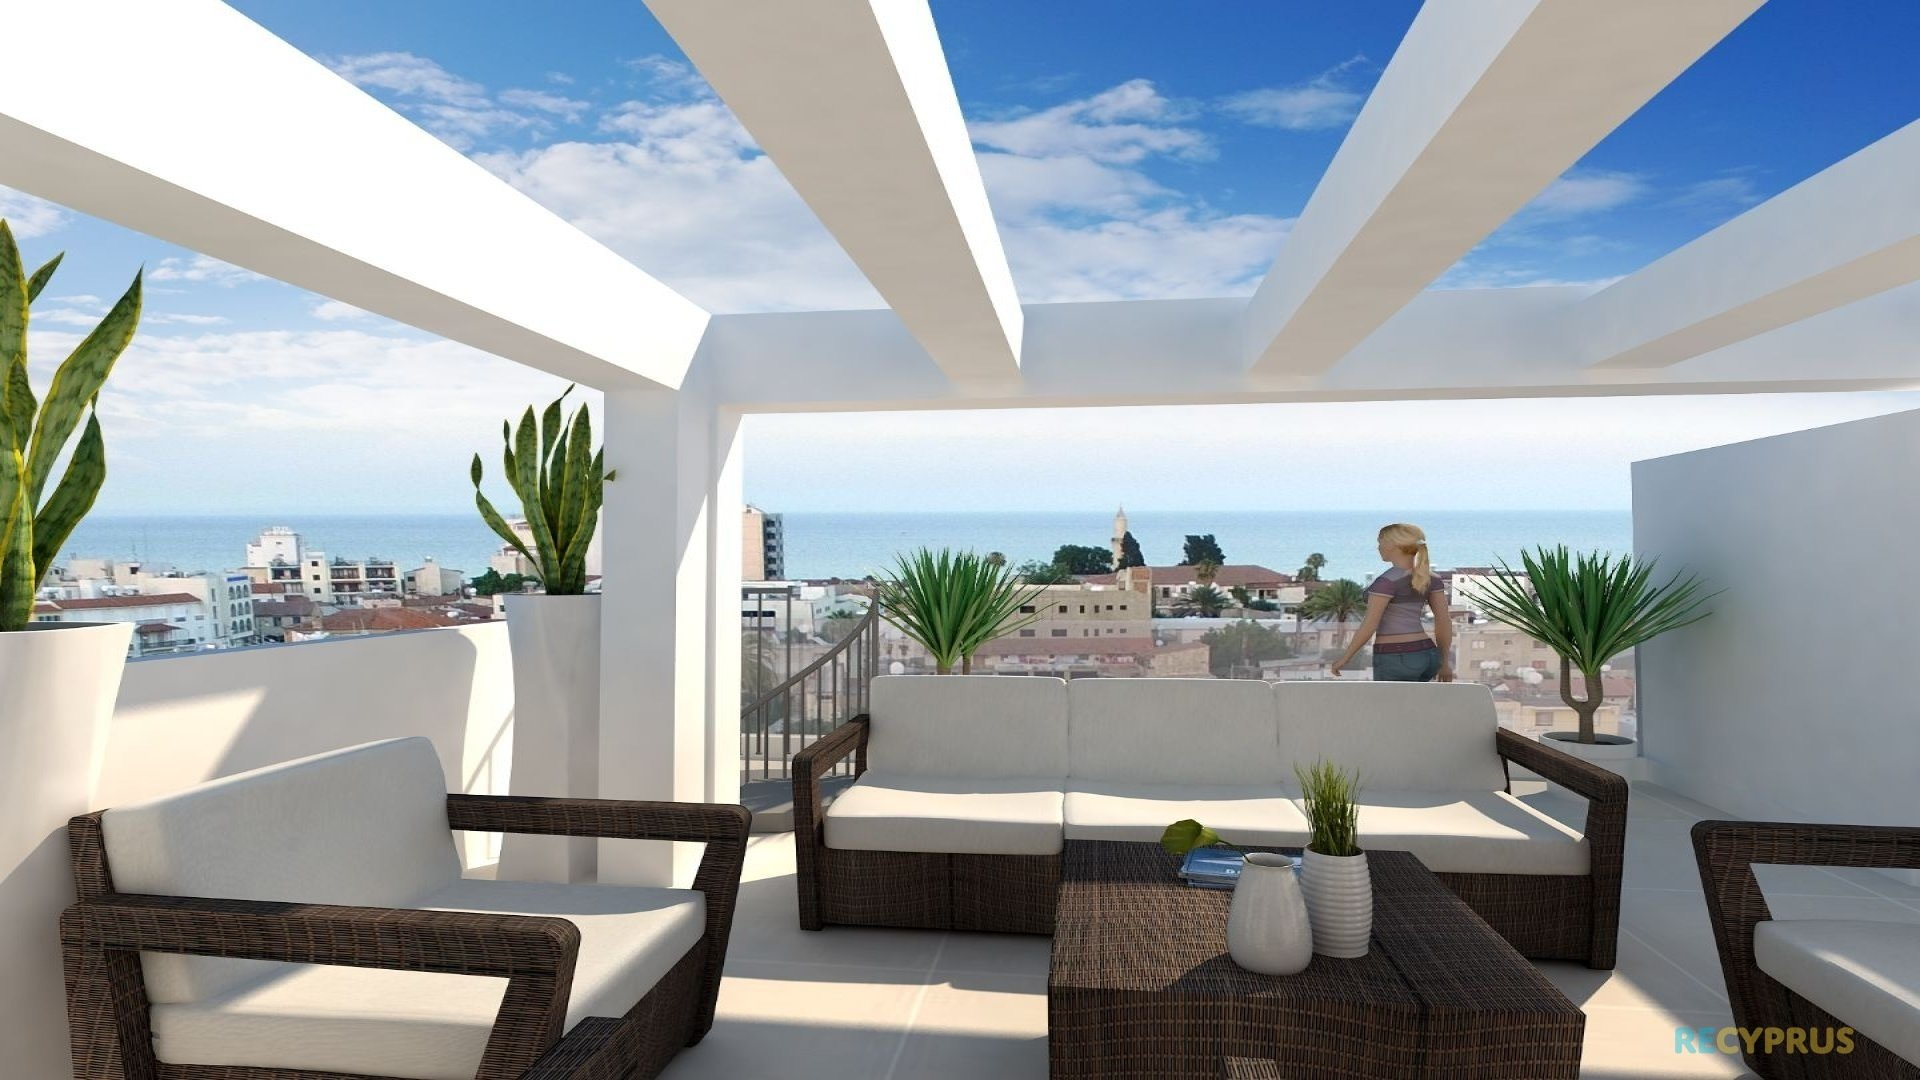 Apartment for sale City Center Larnaca Cyprus 10 3595